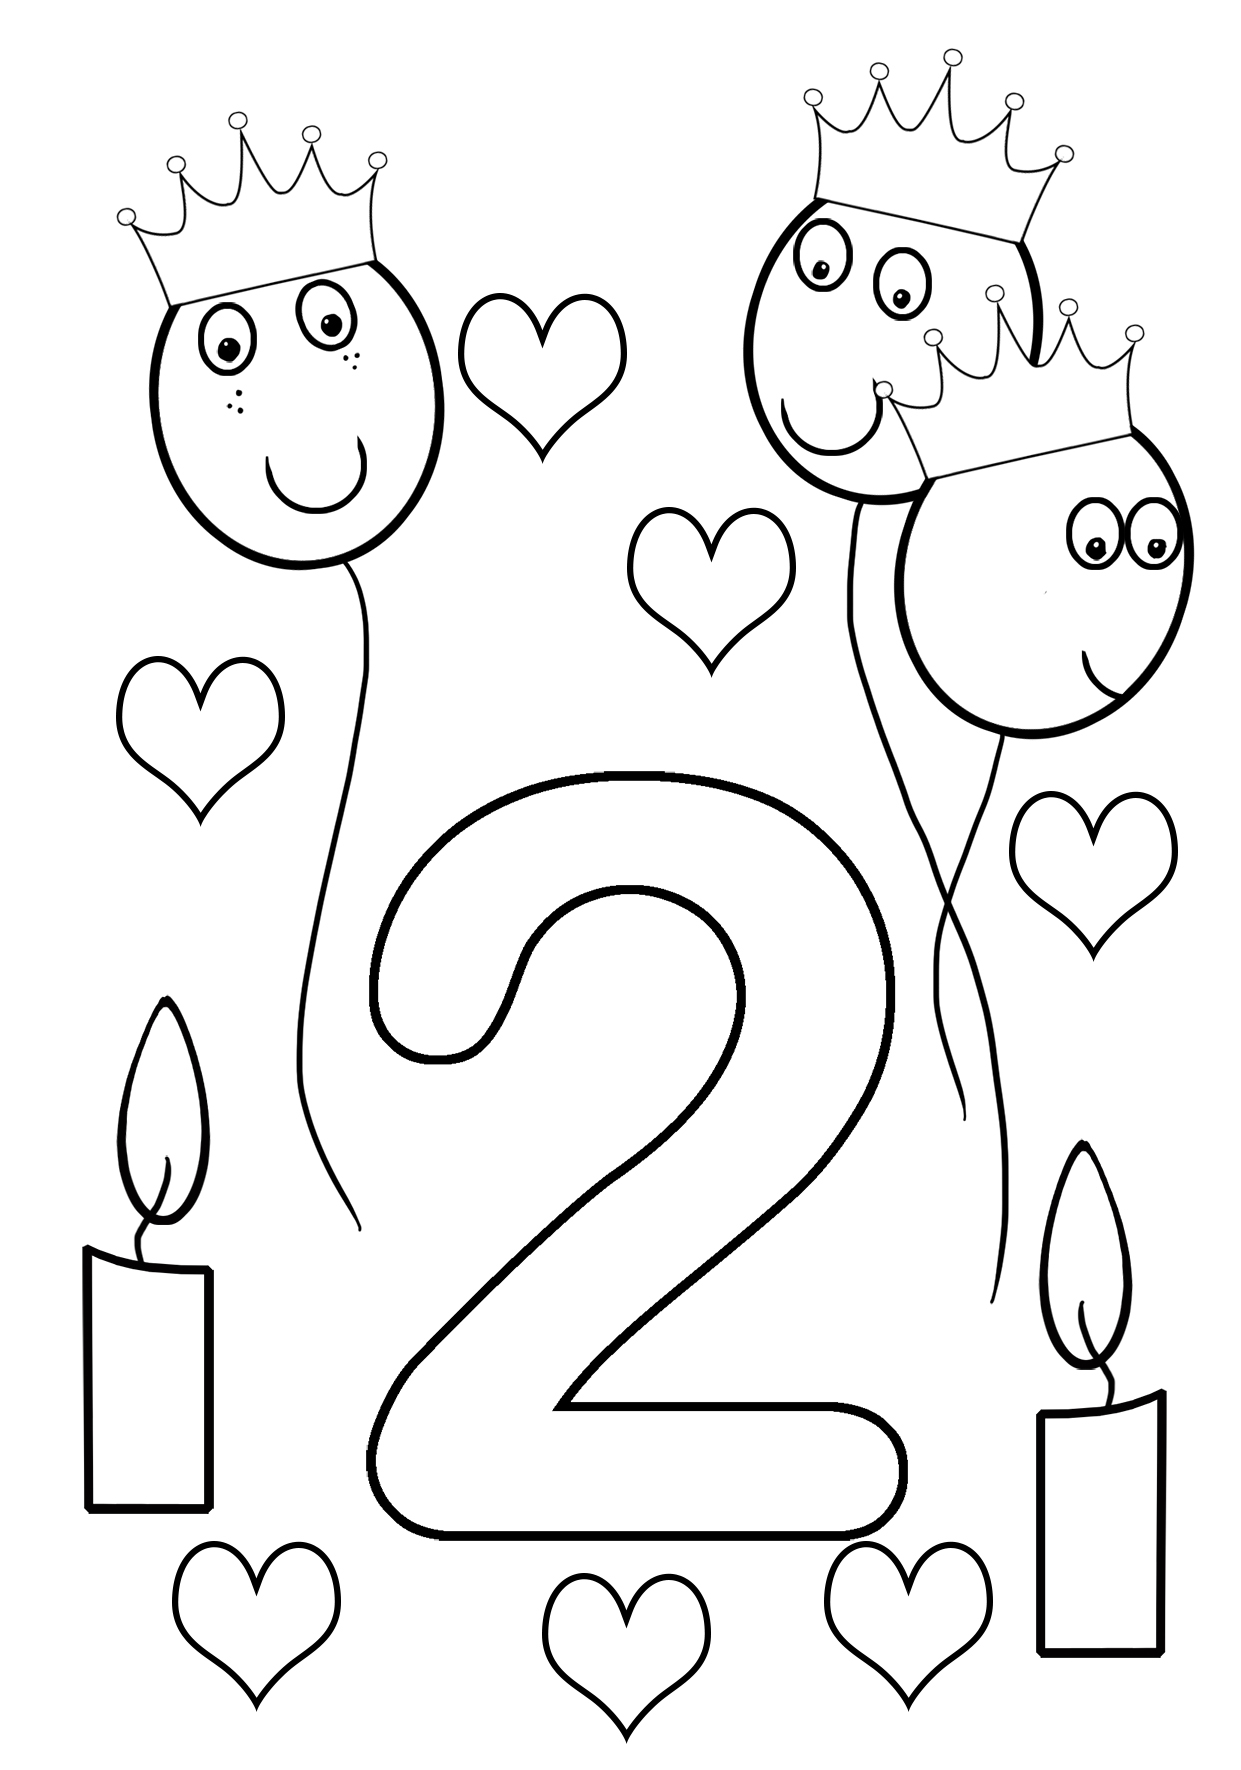 happy 2nd birthday coloring pages happy birthday cards drawing at getdrawings free download happy birthday coloring pages 2nd